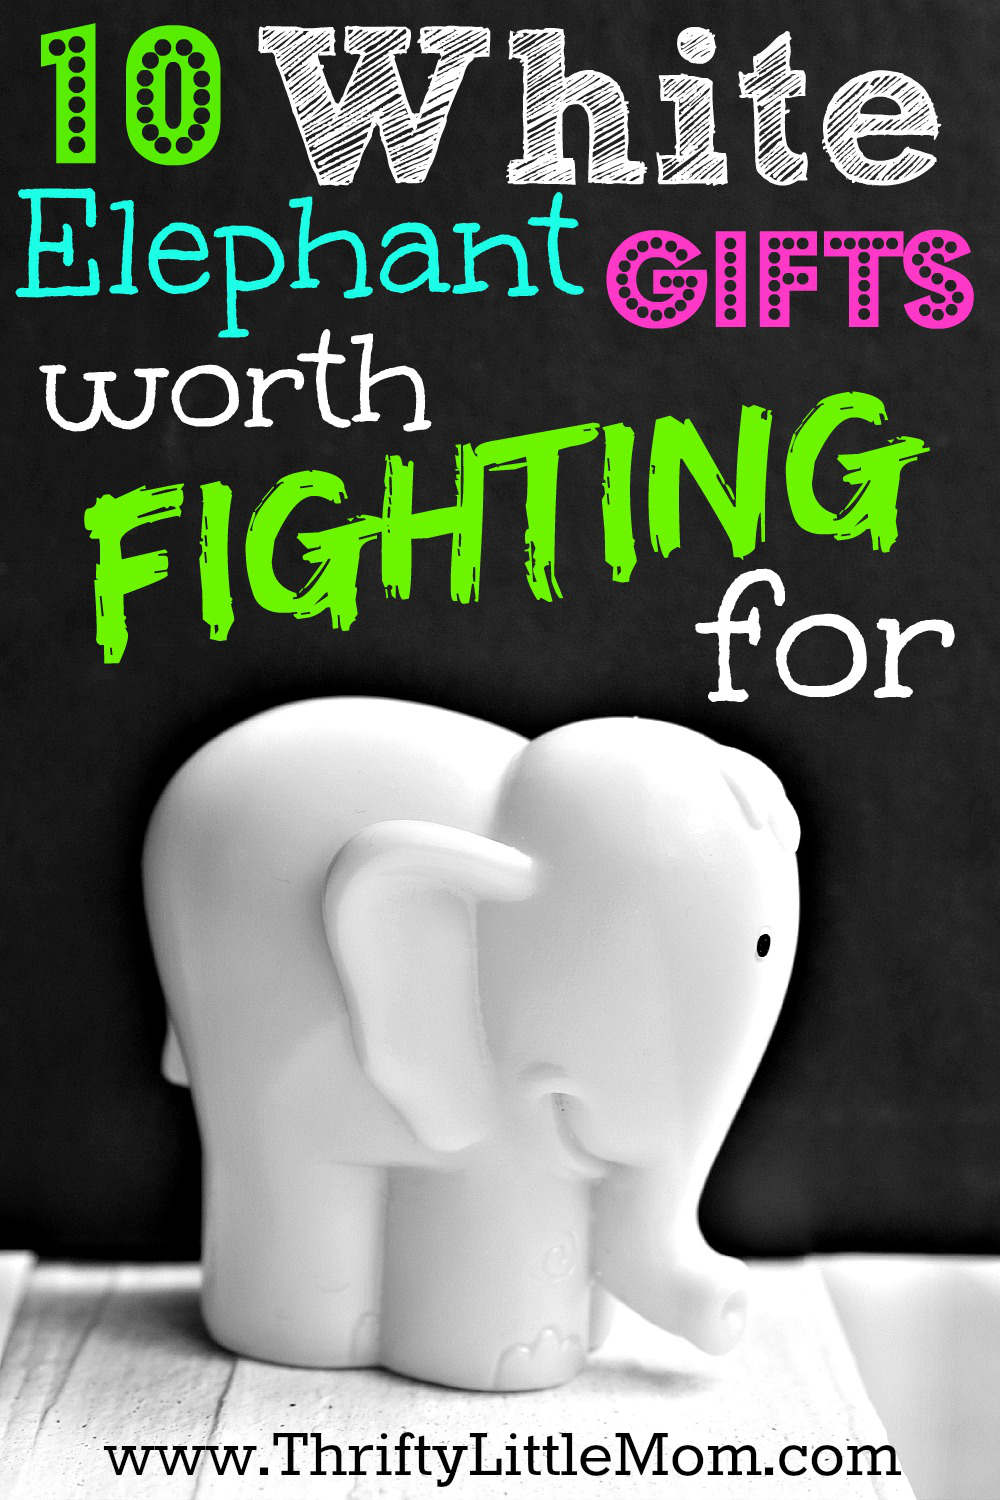 White elephant gifts worth fighting for thrifty little mom Good gifts for gift exchange